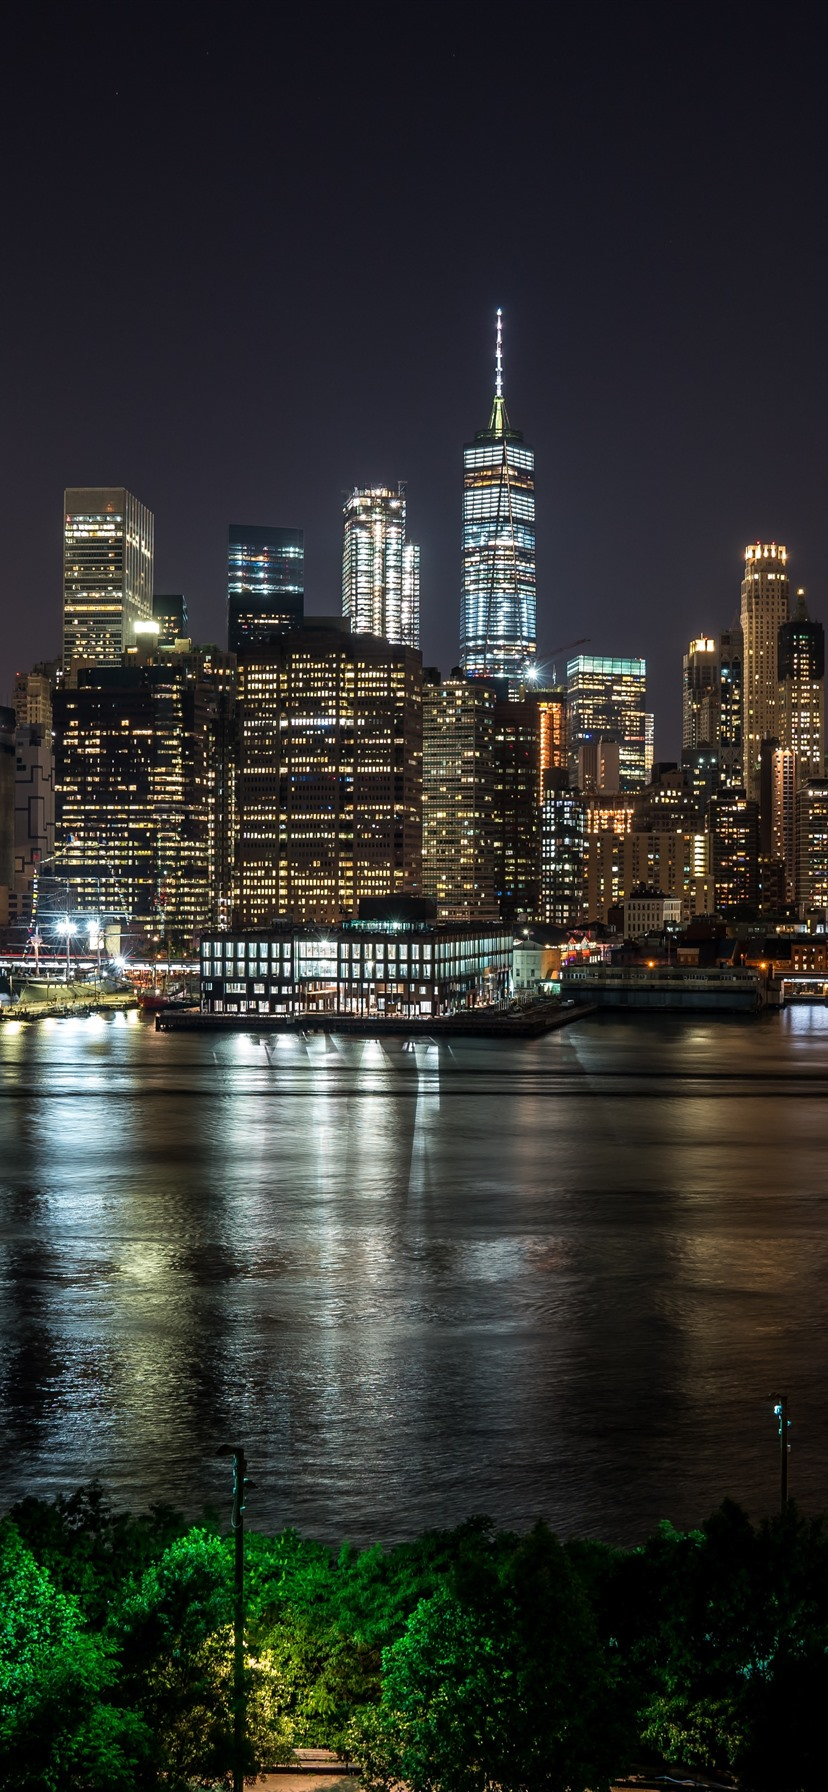 New York At Night City River Skyscrapers Lights Usa 1242x2688 Iphone 11 Pro Xs Max Wallpaper Background Picture Image